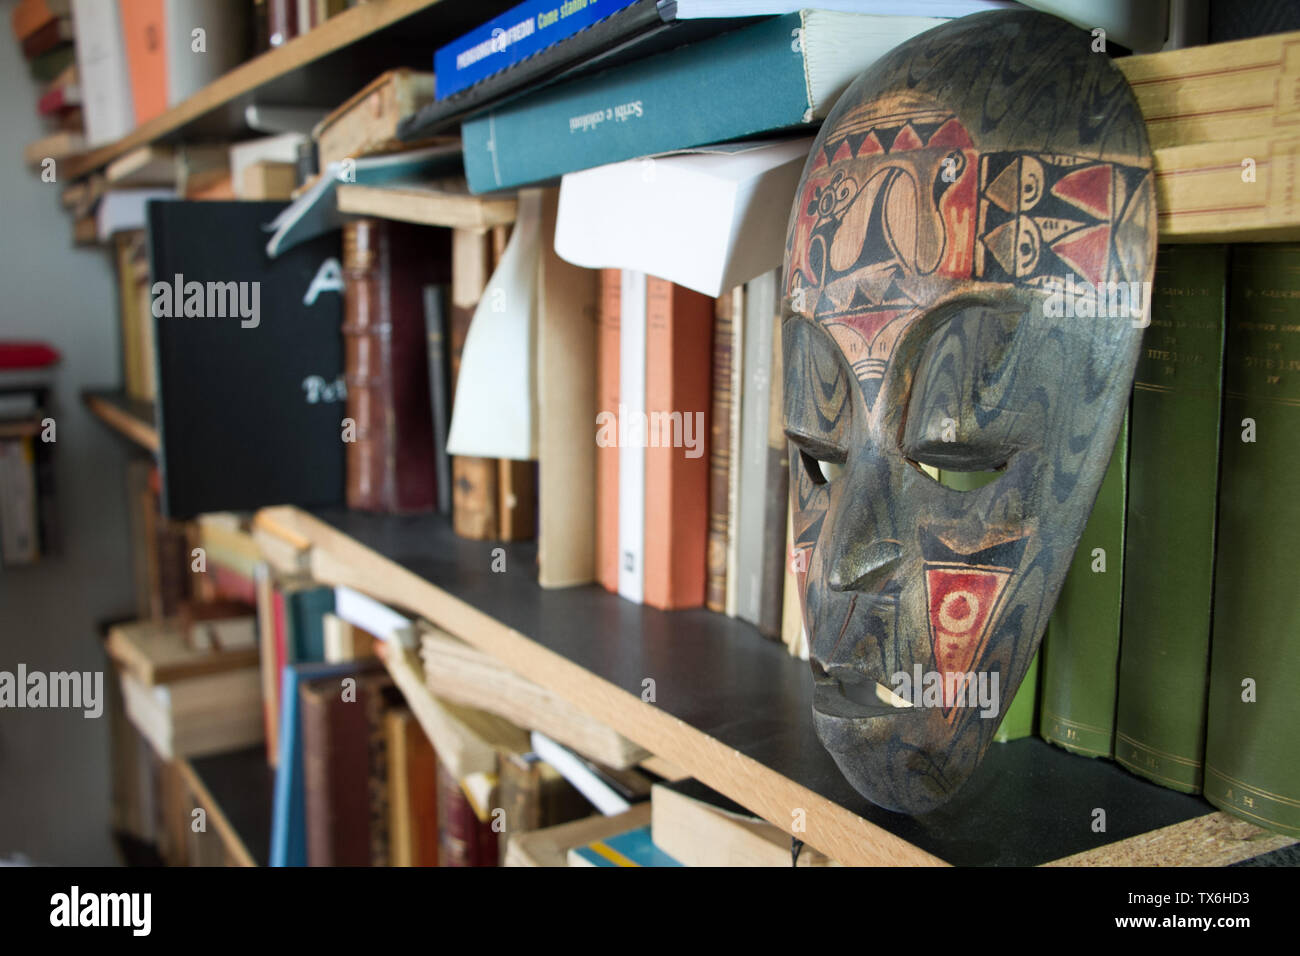 Paris, France - July 05, 2018: Closeup of a shelf with books and an antique mask in a small apartment in the suburbs of Paris - Stock Image